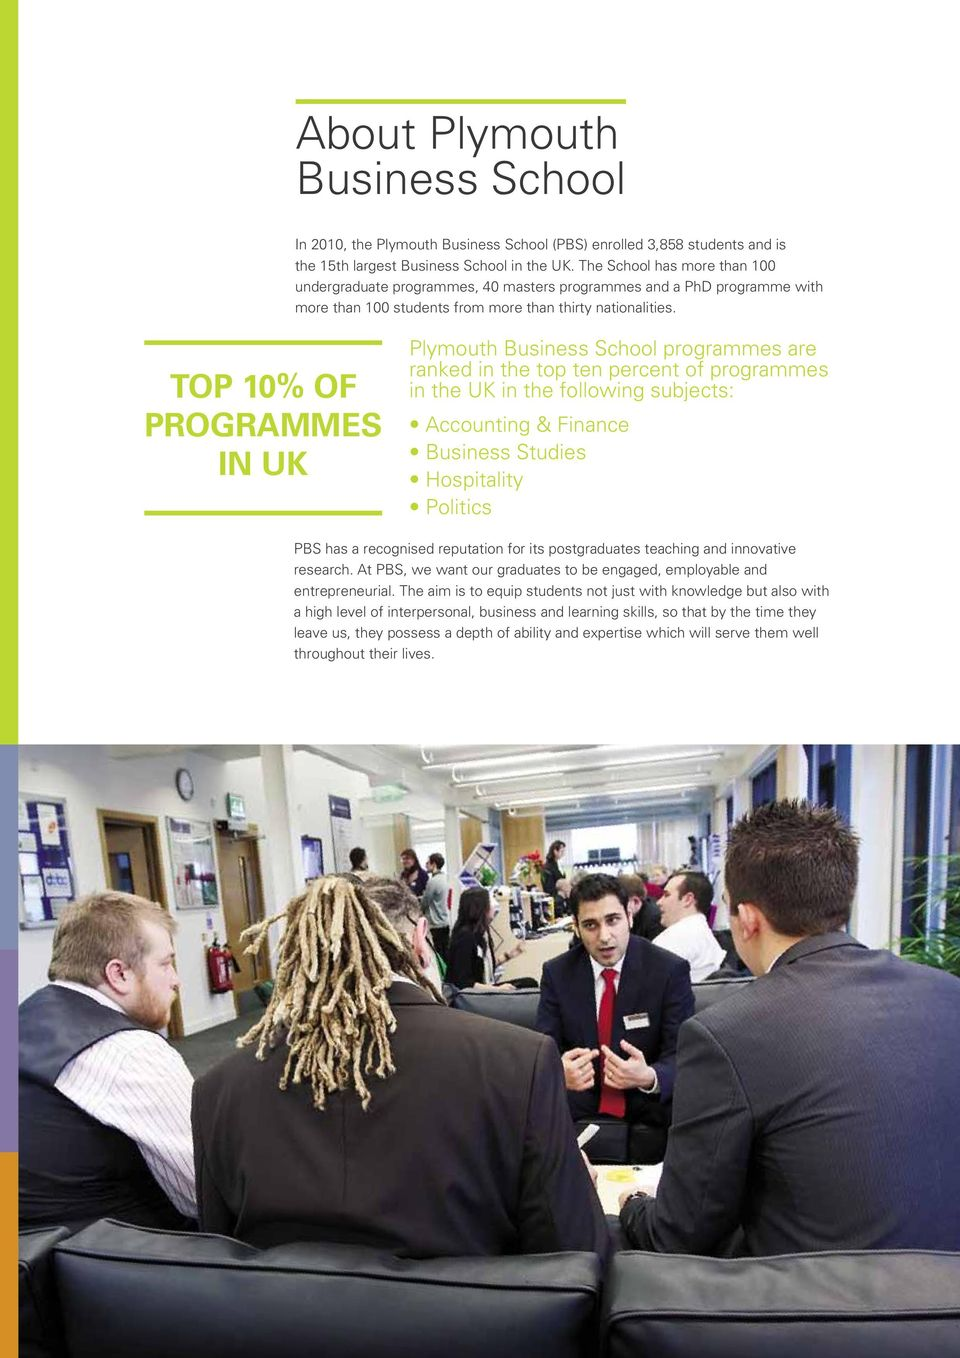 TOP 10% OF PROGRAMMES IN UK Plymouth Business School programmes are ranked in the top ten percent of programmes in the UK in the following subjects: Accounting & Finance Business Studies Hospitality